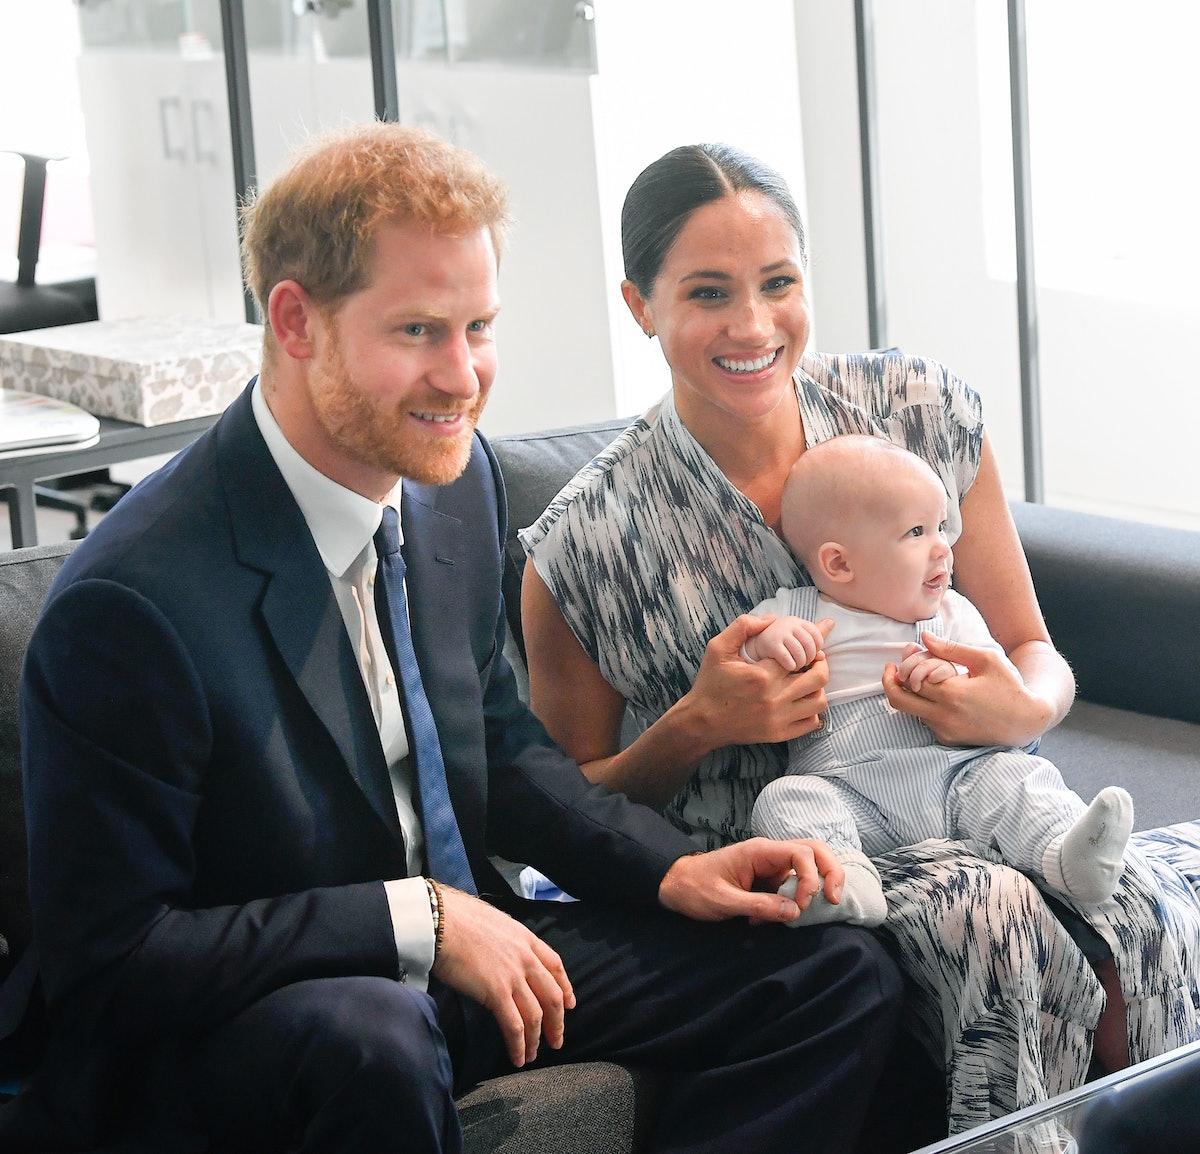 Meghan Markle, Prince Harry, and Archie are expected to spend Thanksgiving in the United States.